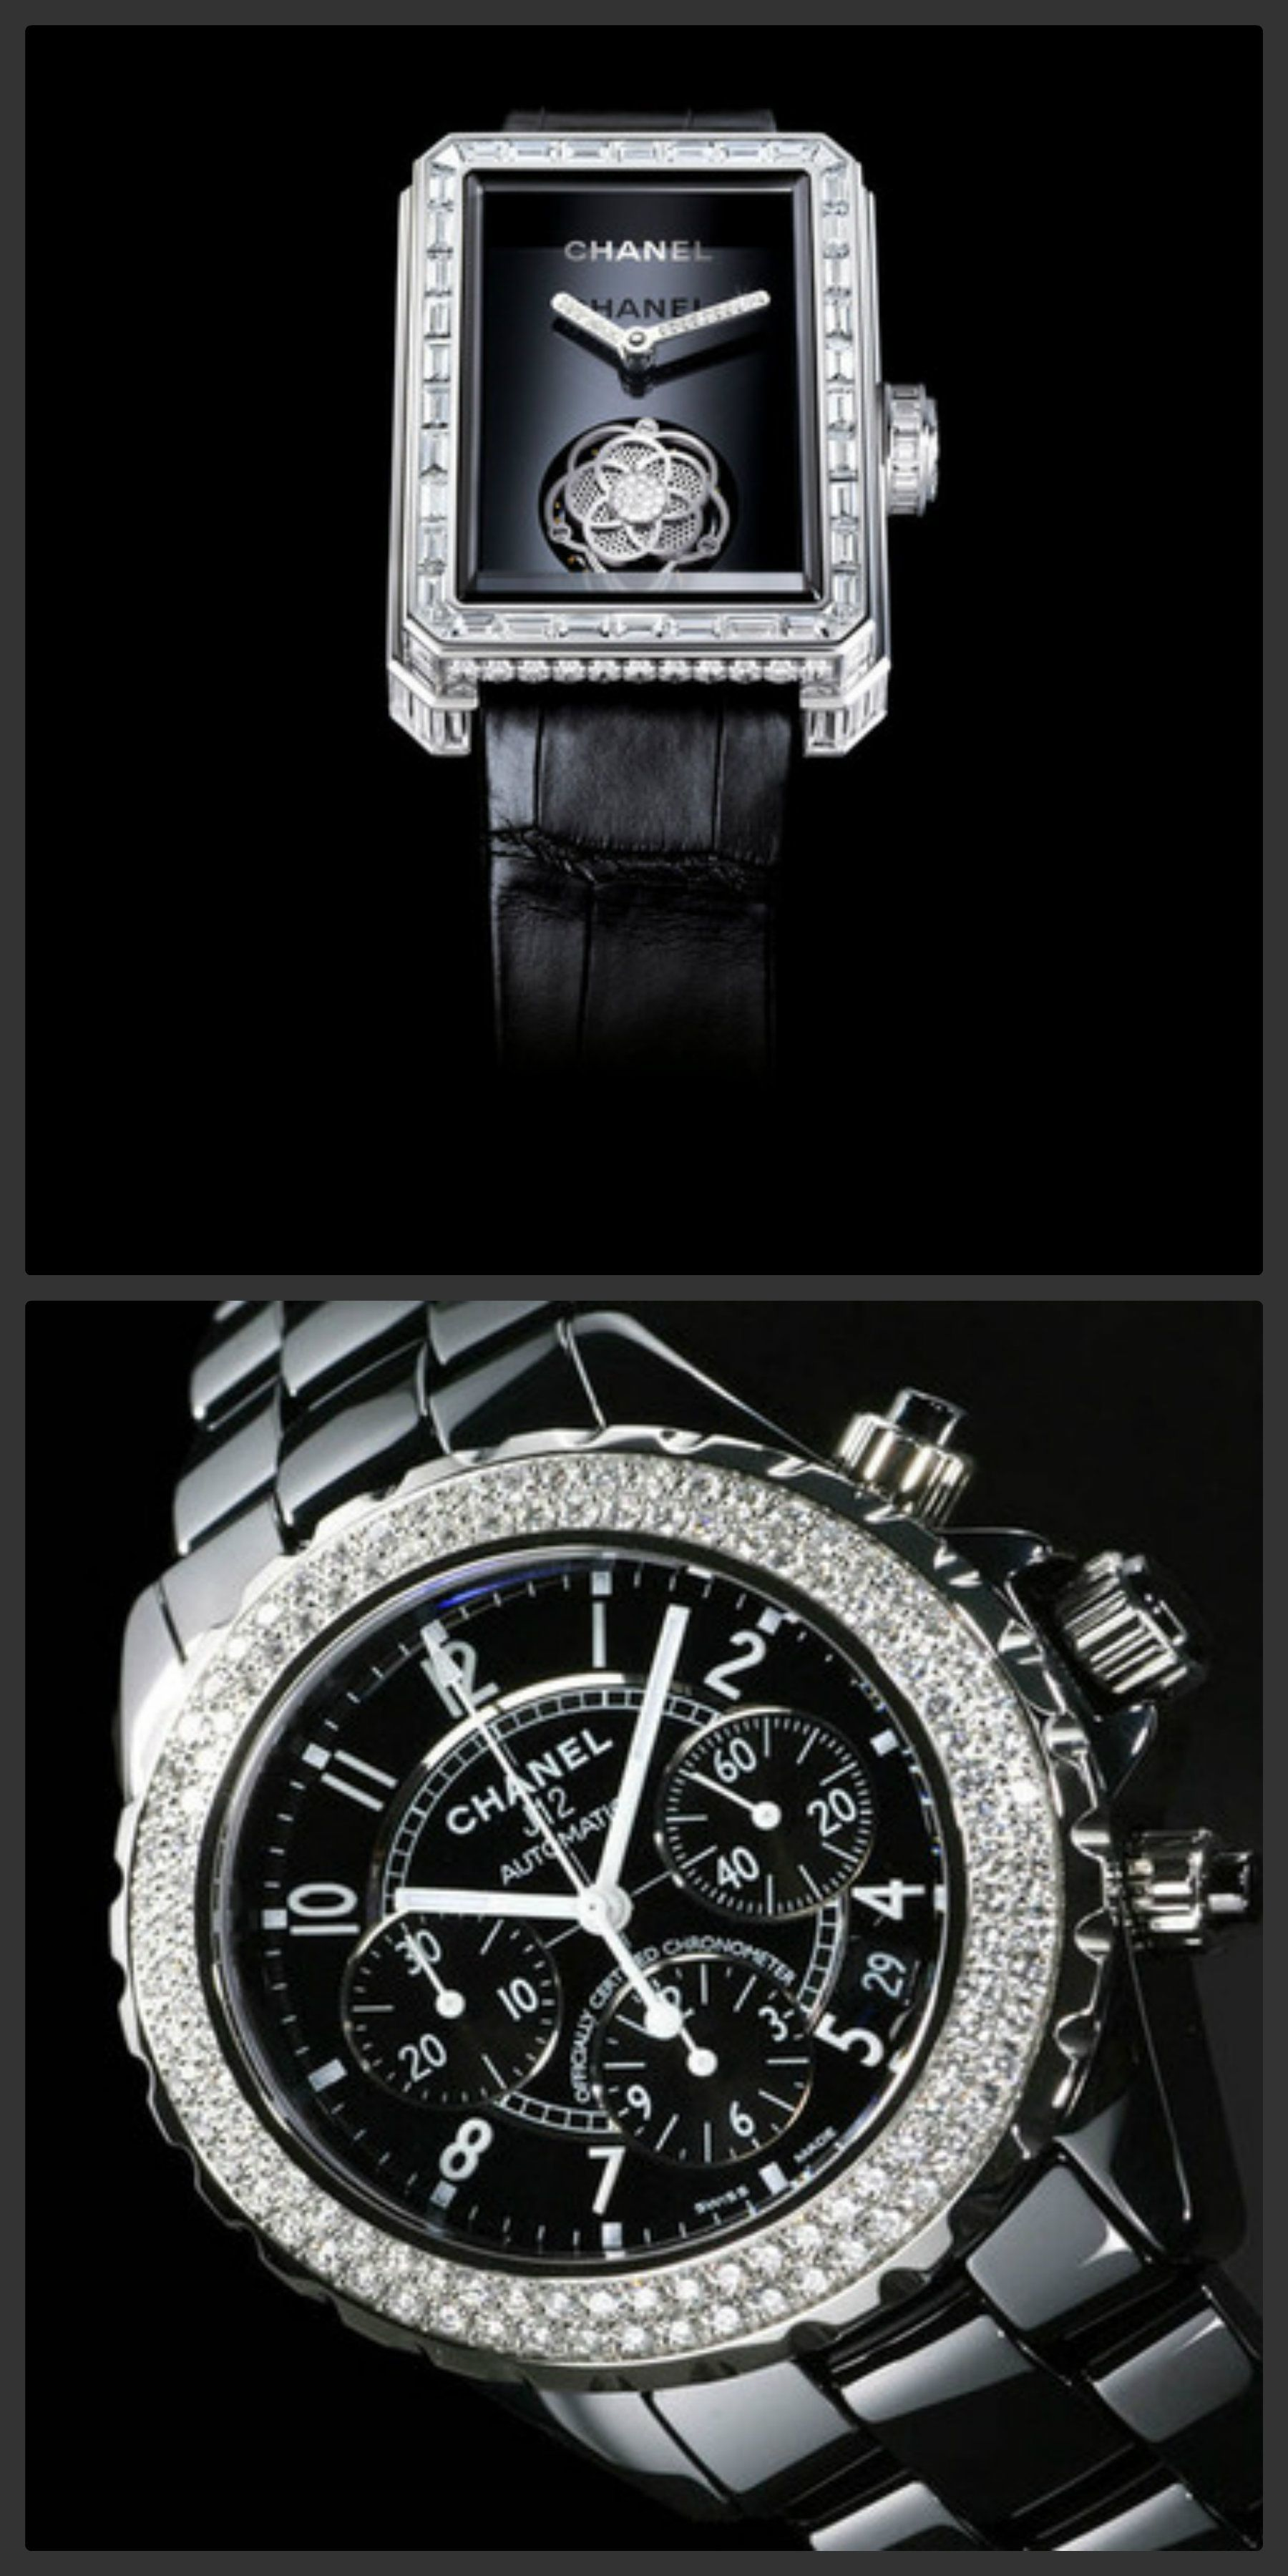 850f5d4a822a Chanel diamond watches